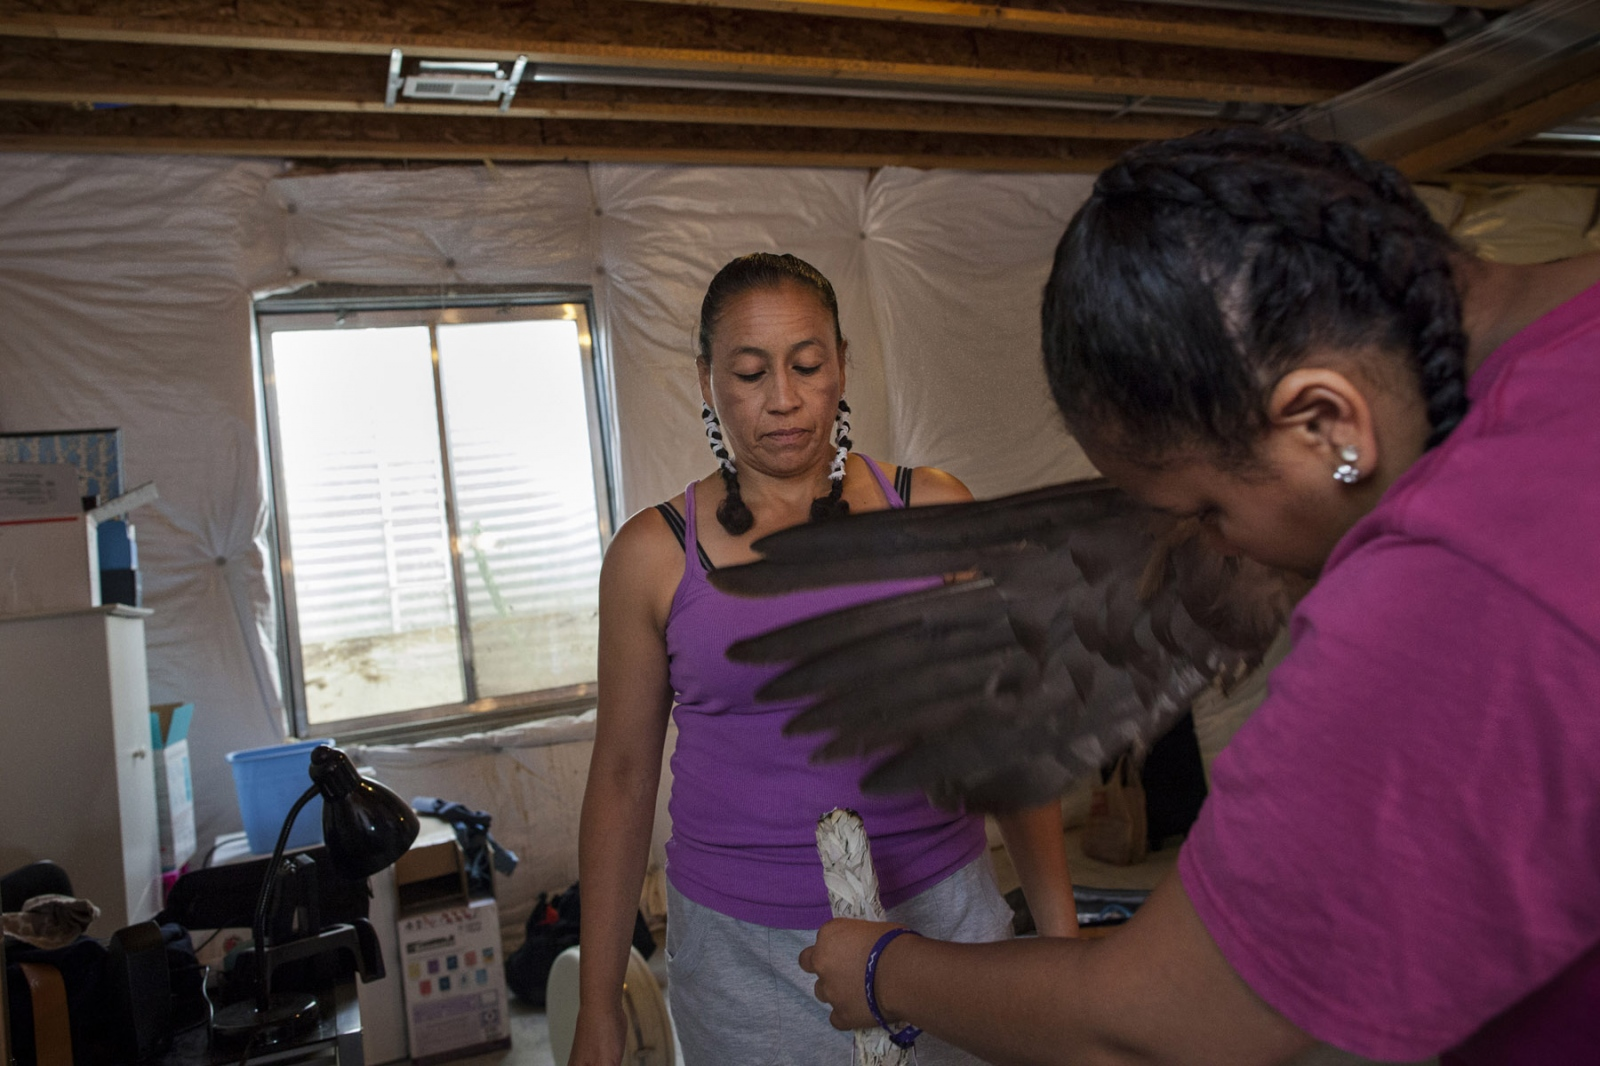 Aided by her daughter Tia, 17, Retired Sergeant First Class Mitchelene Big Man, 49, is cleansed with smoke from sage in a ritual before getting dressed for a performance in Pueblo, Colorado. 2014. SFC Big Man is originally from Crow Nation, Montana, and is a veteran of Iraq and the founder of Native American Women Warriors, an organization aimed at raising awareness about women veterans and Native American women veterans in particular. The Color Guard, which is the group of dancers representing the NAWW, often performs in powwows and events relating to veterans and Native Americans.